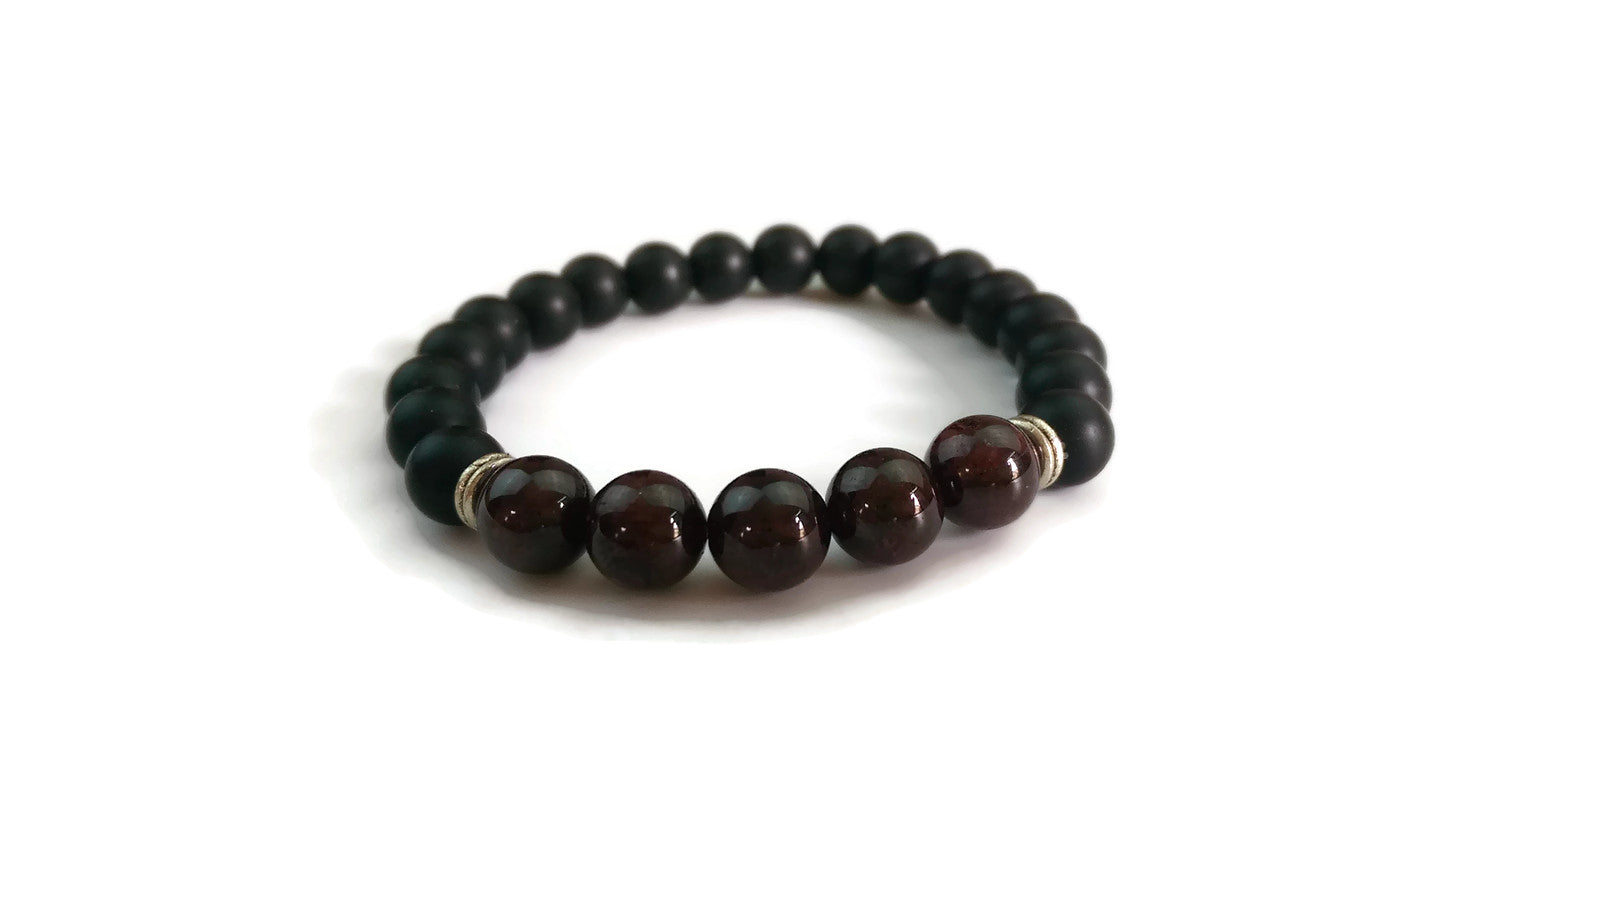 8mm Black Matte Obsidian and Garnet Stone Silver Stretch Bracelet Minimal Meditation Yoga Stackable Wrist Mala Stretch  Root Chakra